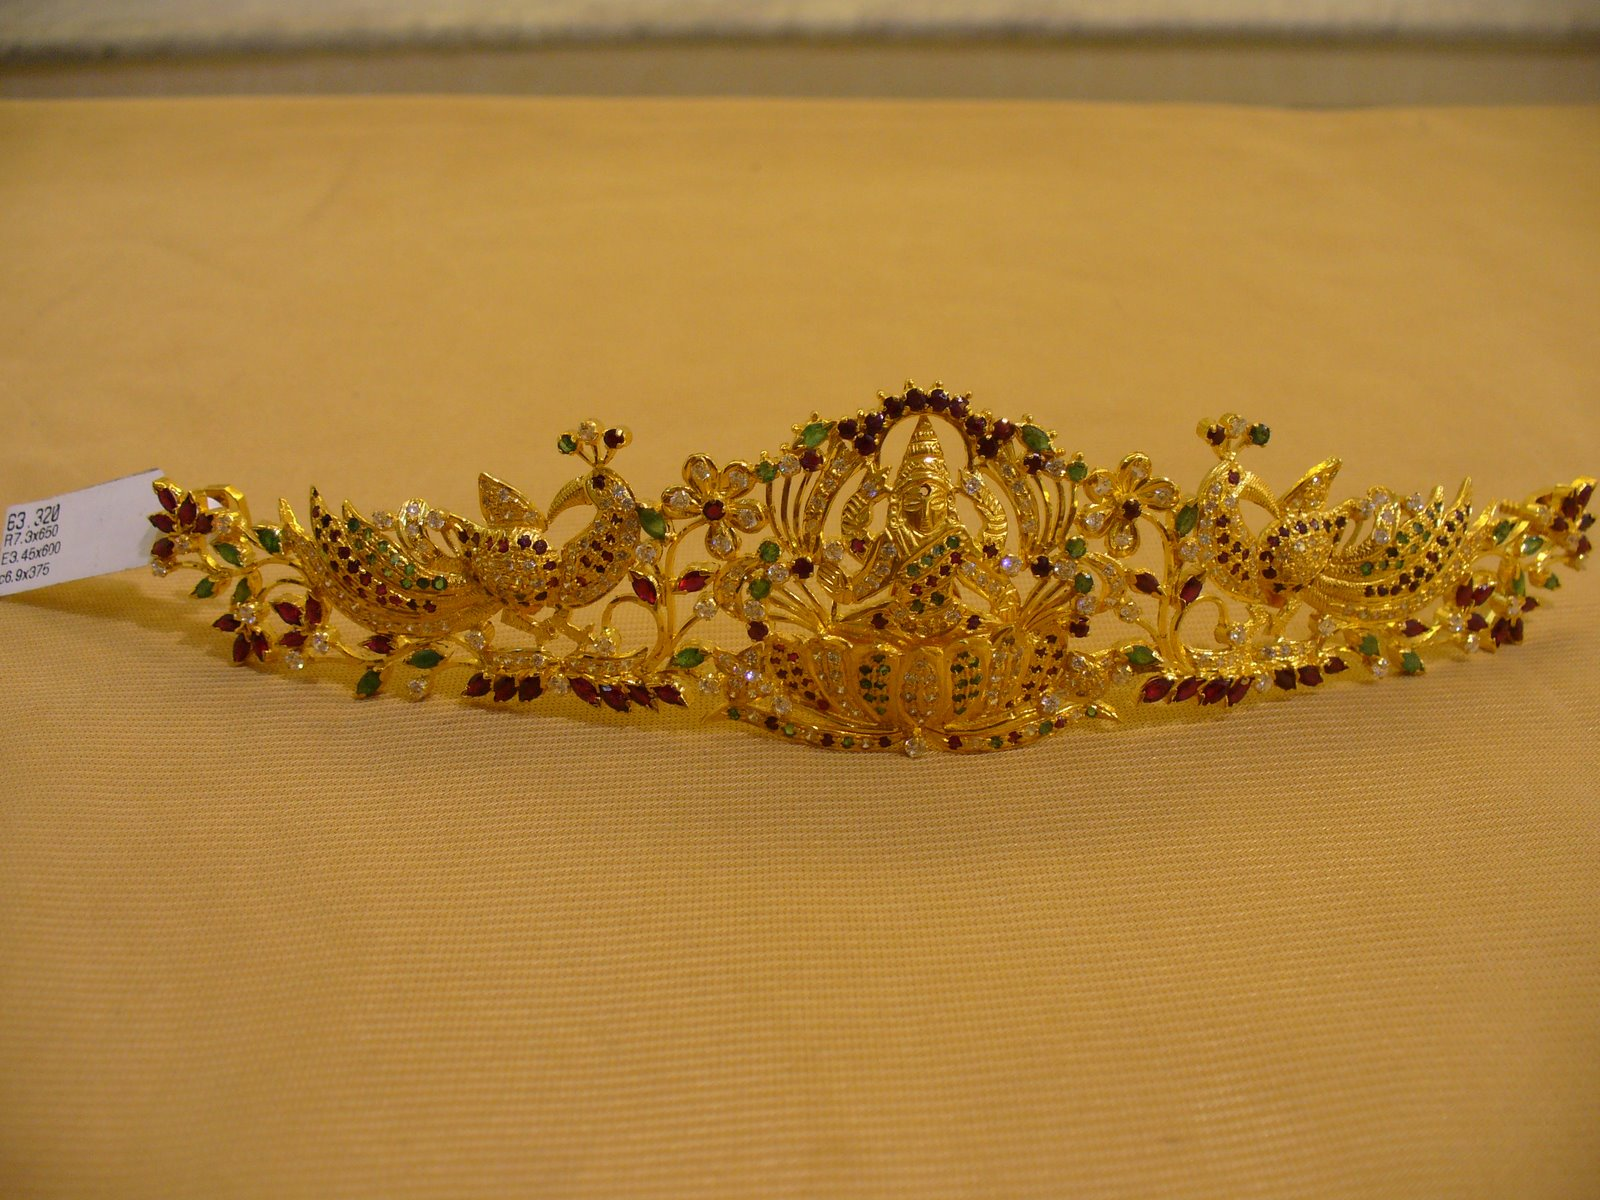 Gold vaddanam oddiyanam kammarpatta waisbelt designs south indian - Vaddanam Waist Belt Kamar Patta Oddiyanam Studded With Rubies And Emeralds